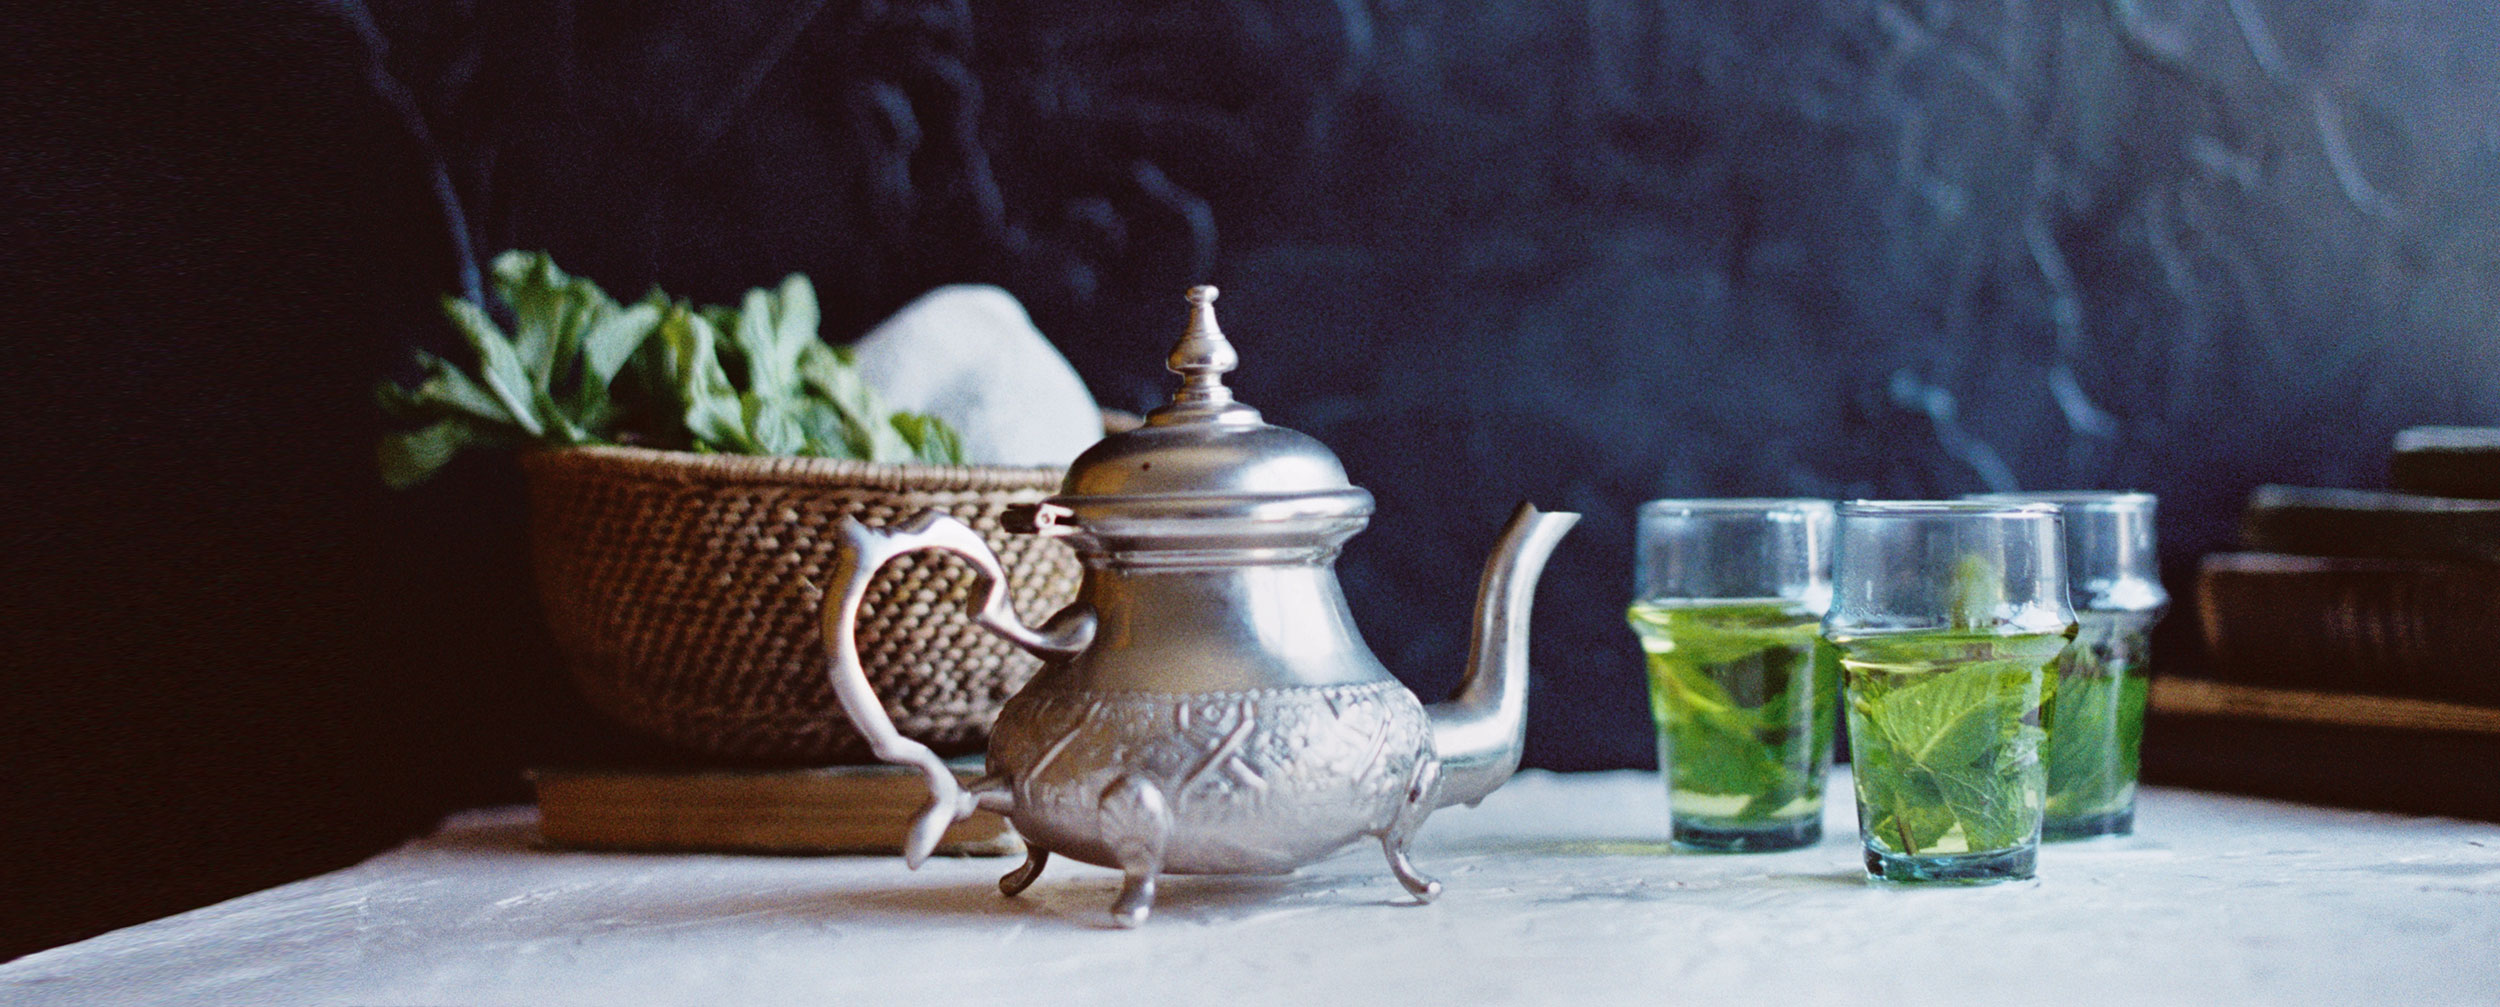 Moroccan-Tea-Glasses-with-Mint-Tea